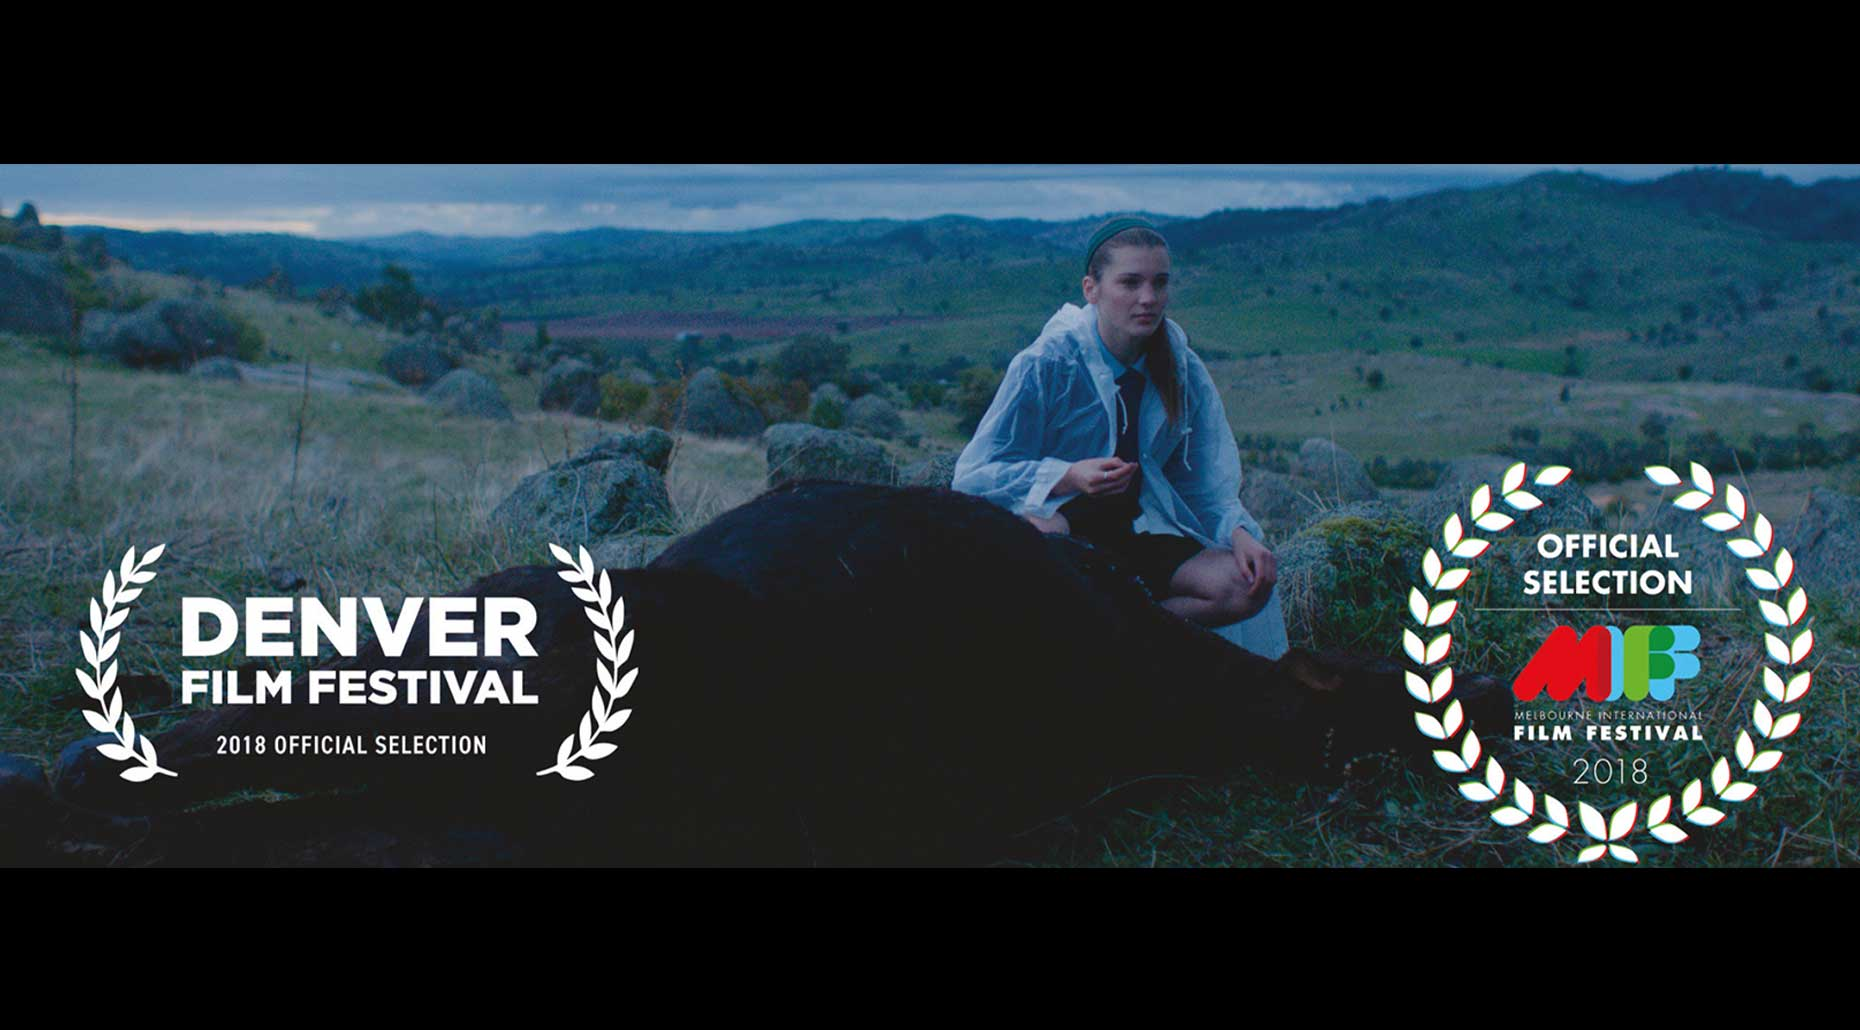 A woman sitting in a landscape and two award logos. Image supplied by Filmmaking Collective.